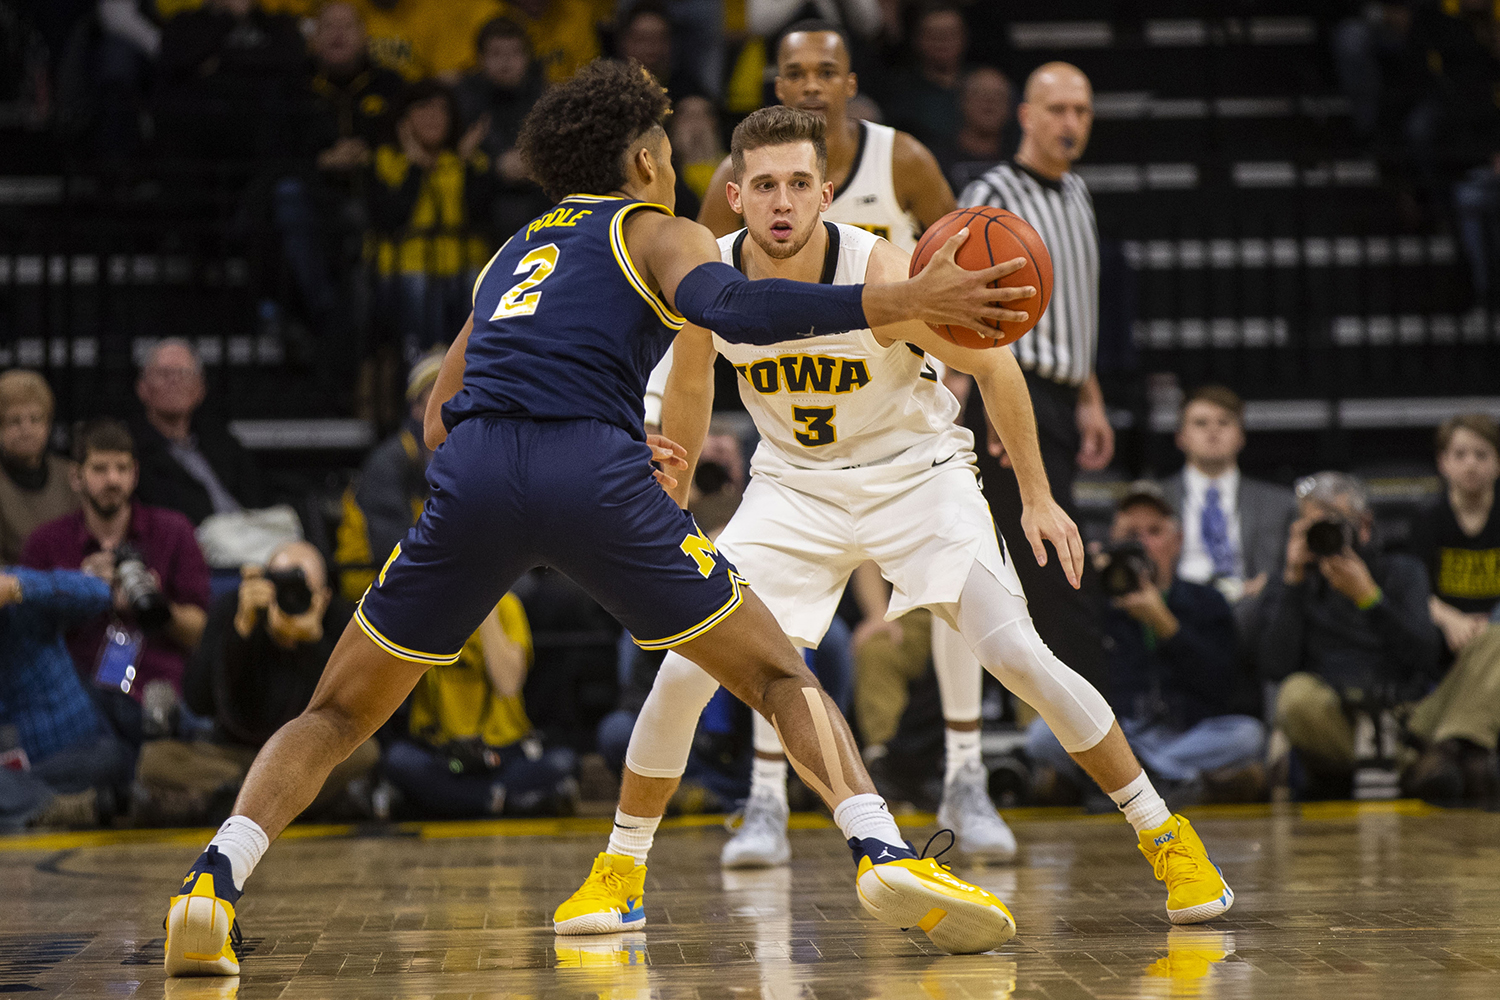 Iowa+guard+Jordan+Bohannon+eyes+the+ball+in+Michigan+guard+Jordan+Poole%27s+hand+during+the+Iowa%2FMichigan+men%27s+basketball+game+at+Carver-Hawkeye+Arena+on+Friday%2C+February+1%2C+2019.+The+Hawkeyes+took+down+the+No.+5+ranked+Wolverines%2C+74-59.+